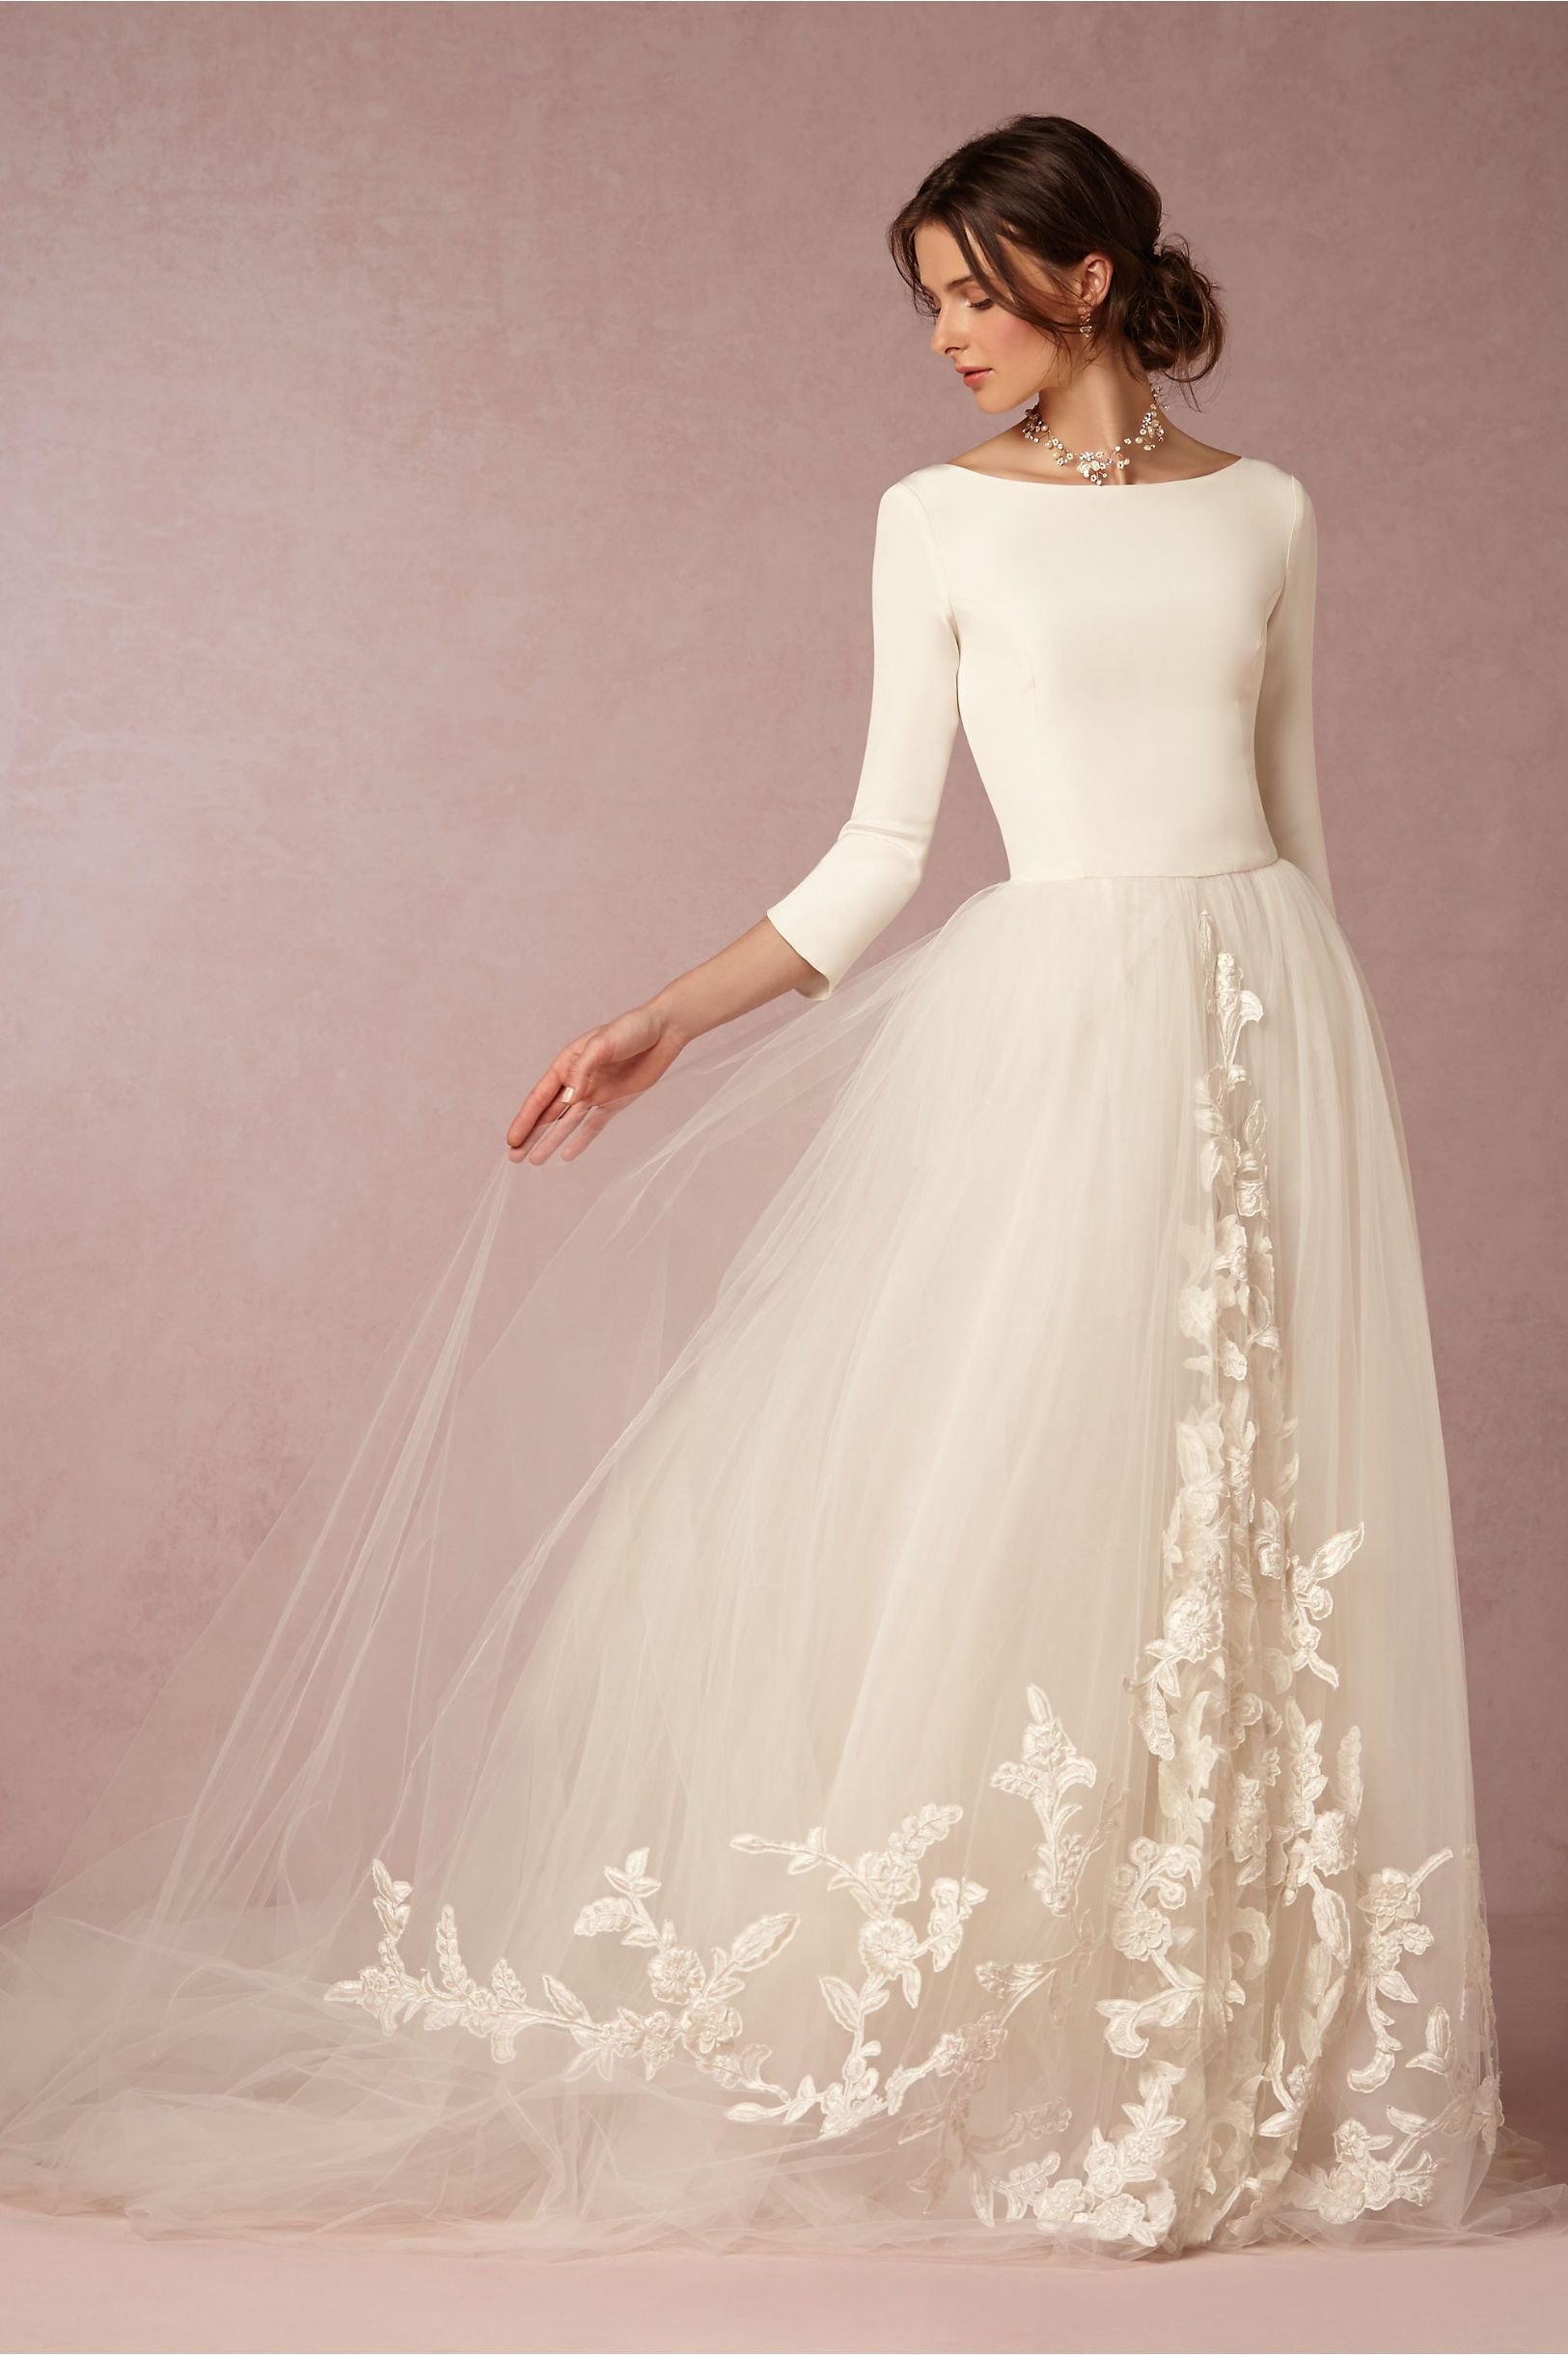 Autumn wedding dresses donut fear the sleeve fall wedding dresses